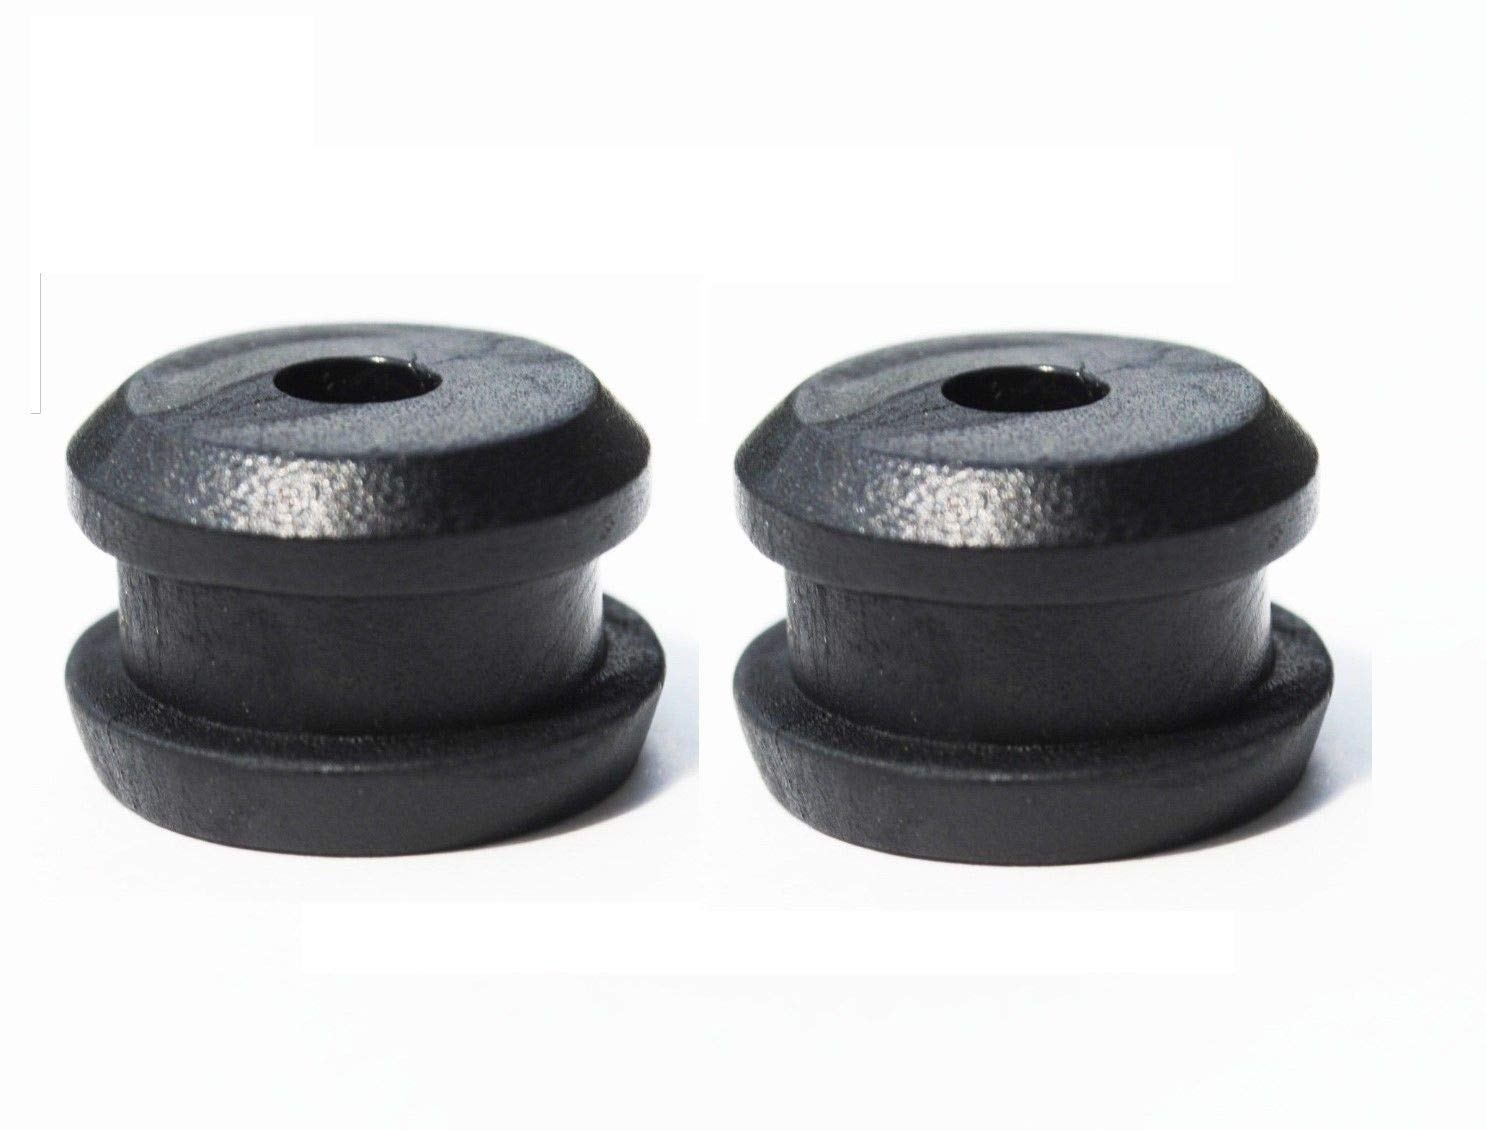 Aftermarket Compatible/Replacement for Set of 2 Shift Lever Grommets for Dodge Durango Dakota 2000 4x4